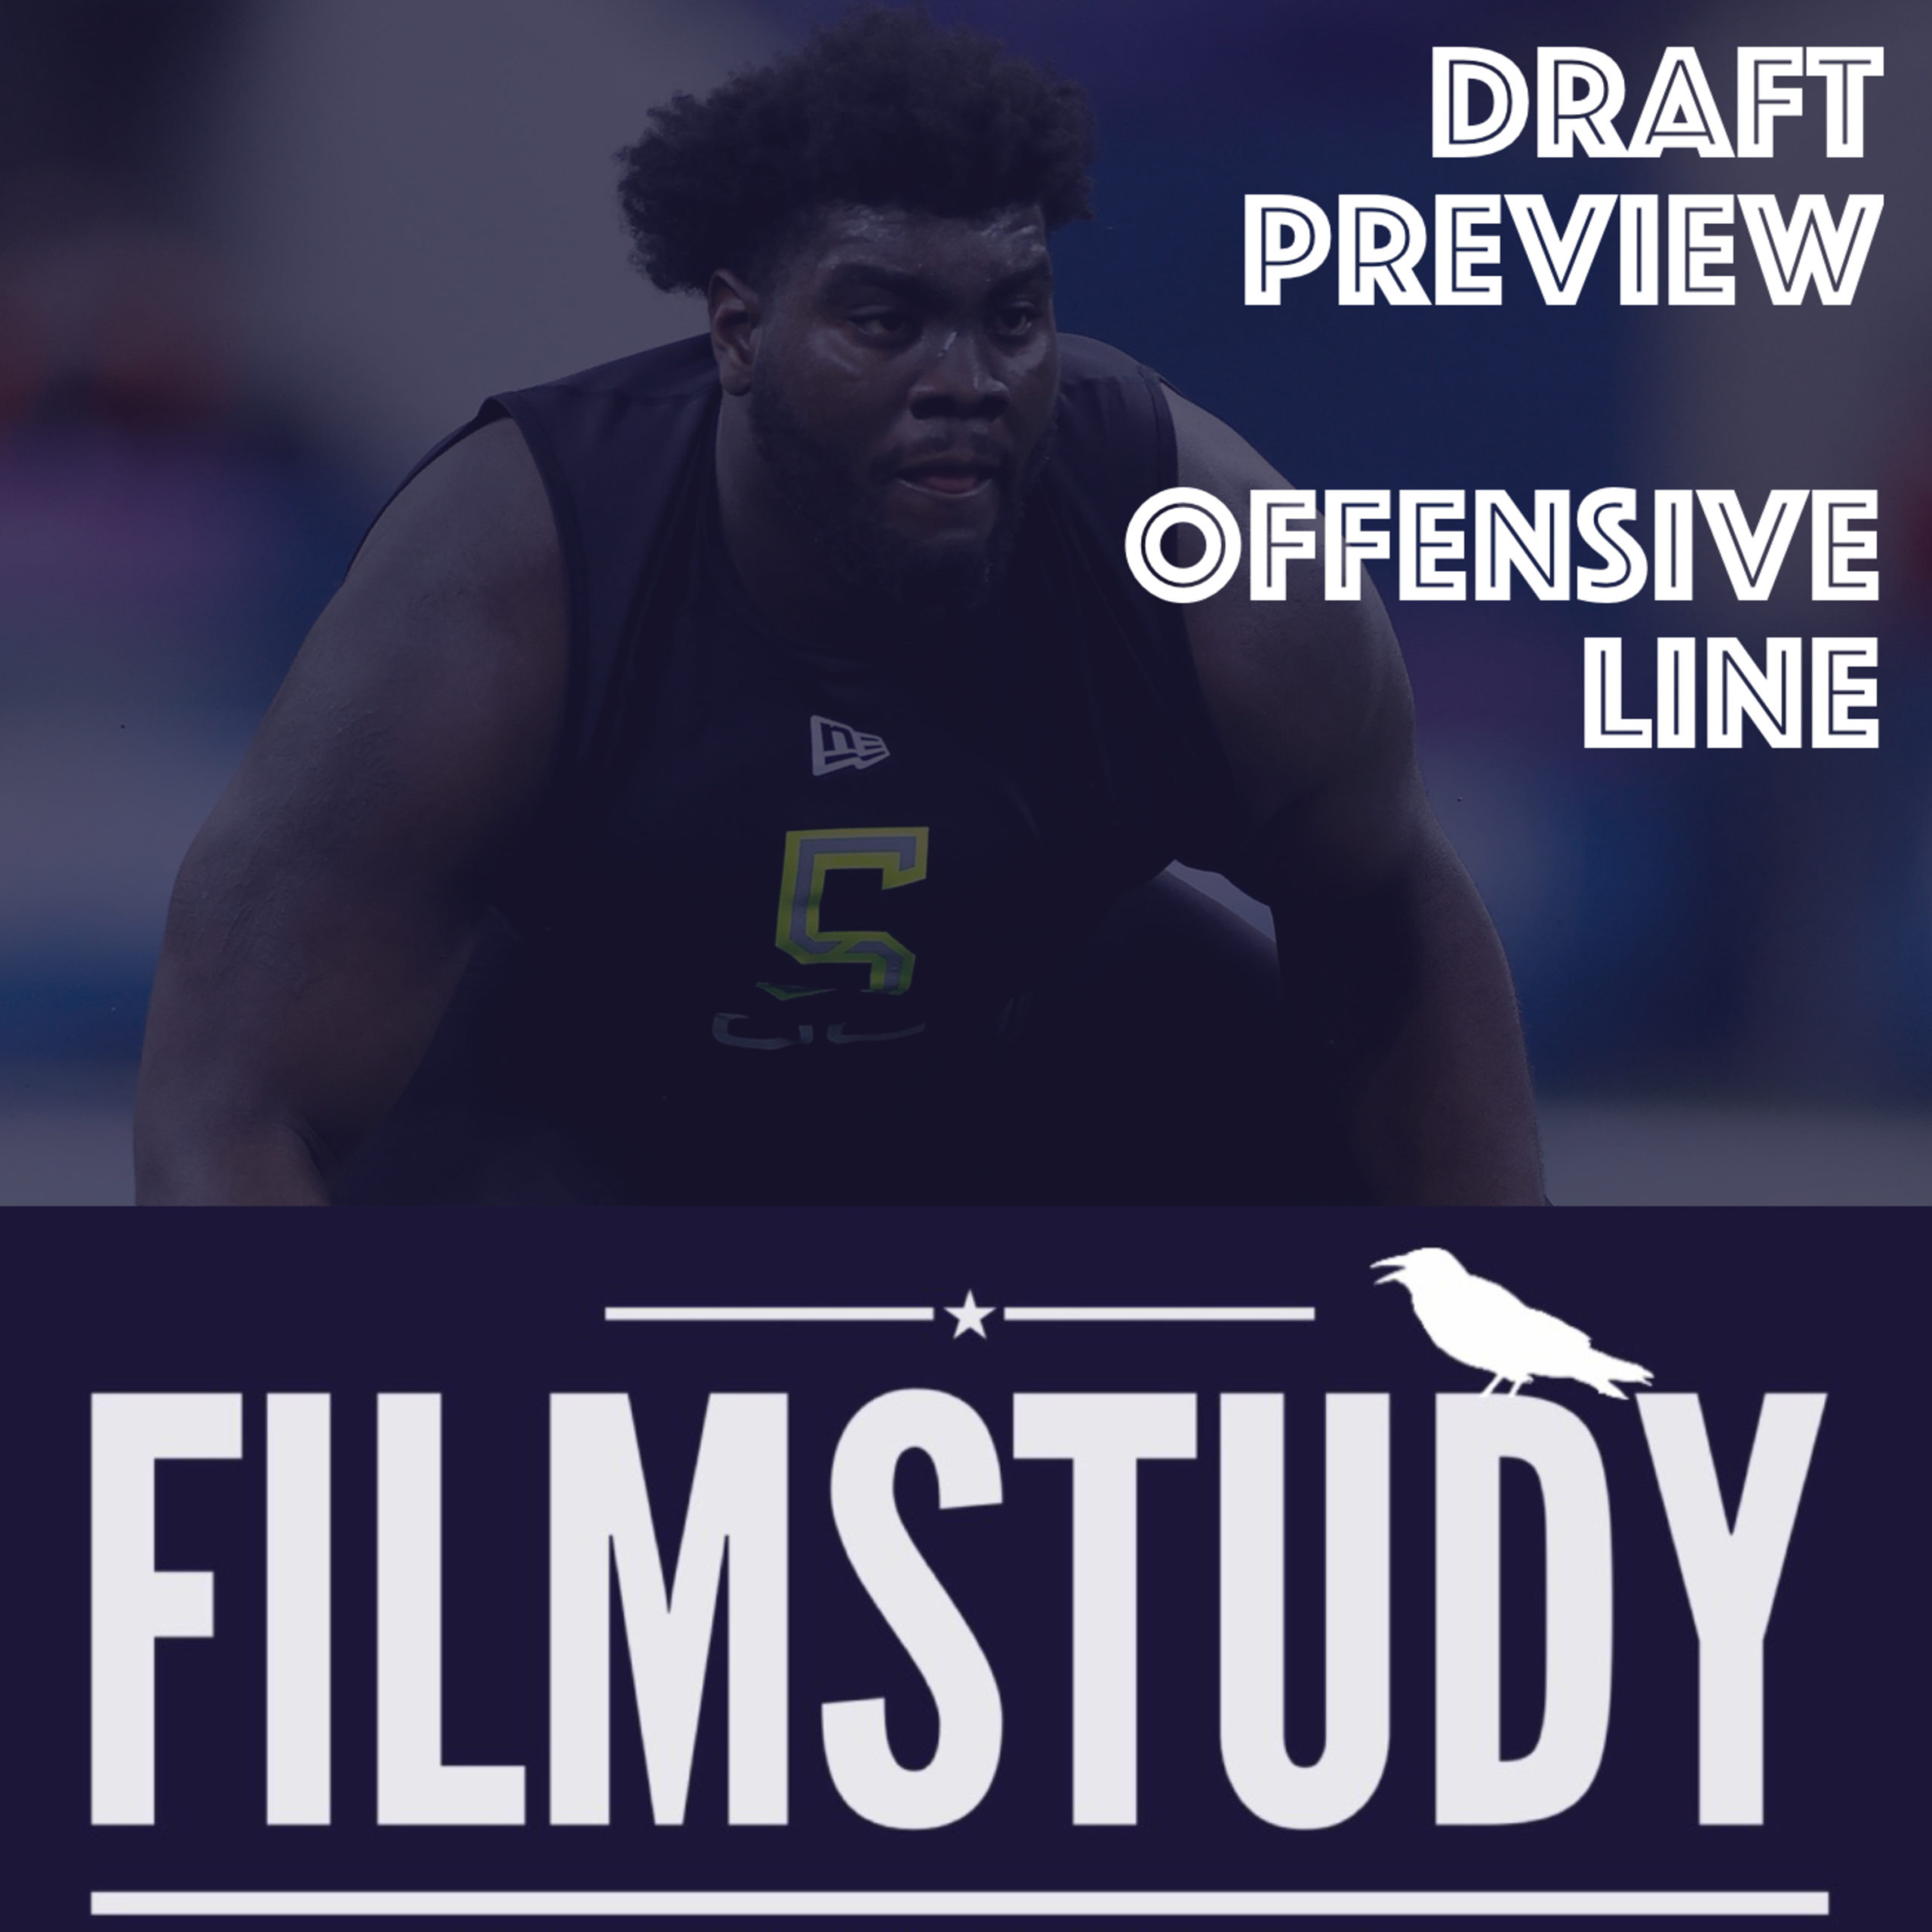 Draft Preview : Offensive Line Prospects